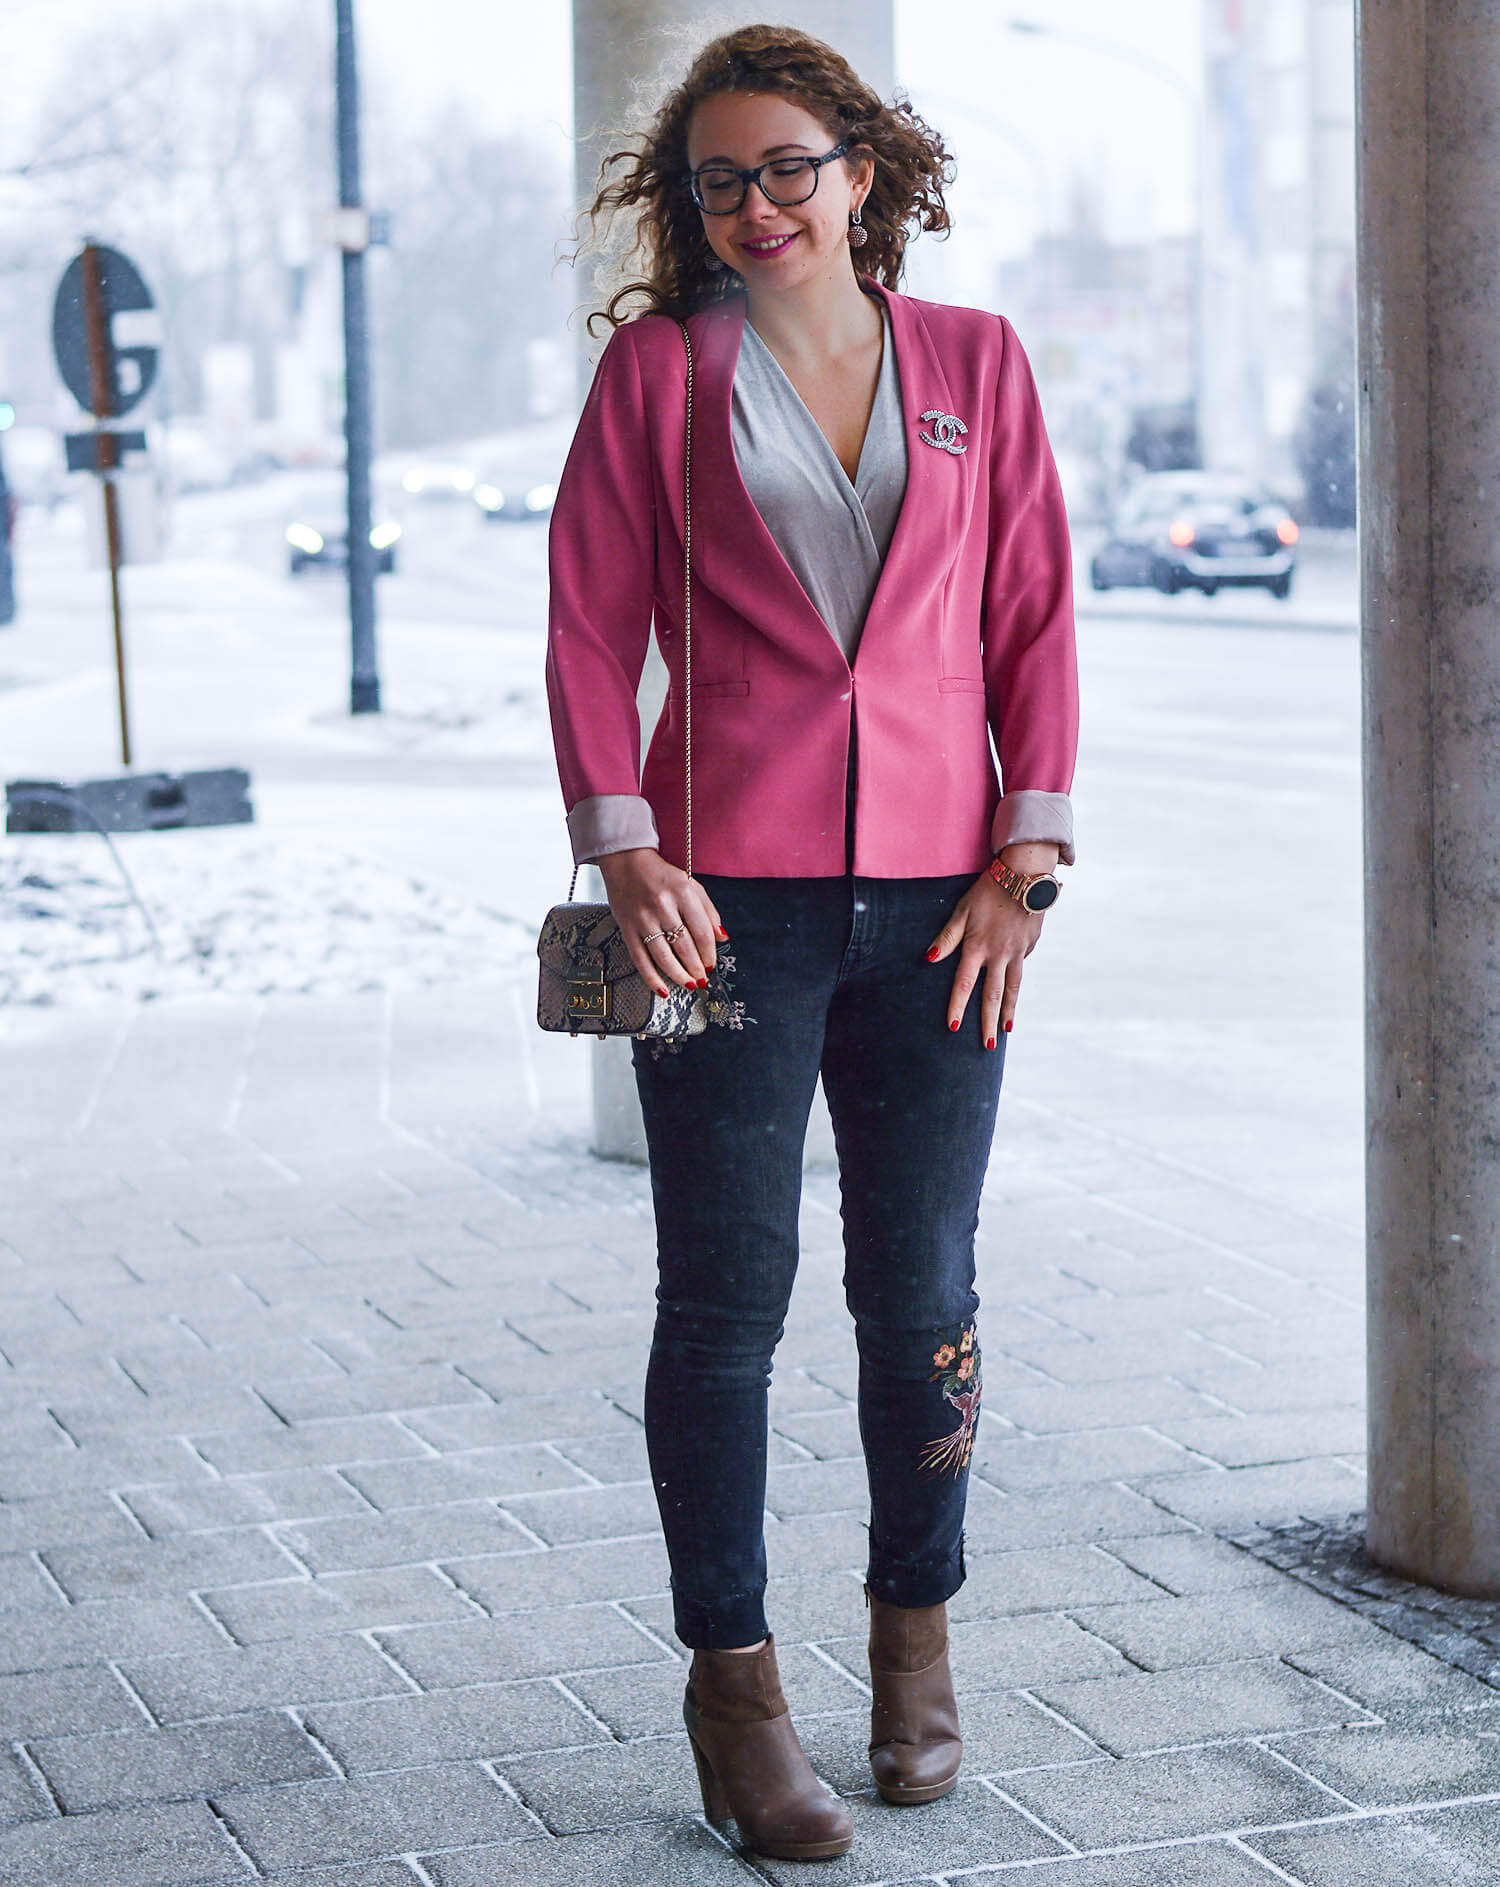 Outfit-Winter-meets-Spring-Pink-Blazer-Velvet-Body-Embroidered-Denim-and-Booties-kationette-fashionblogger-nrw